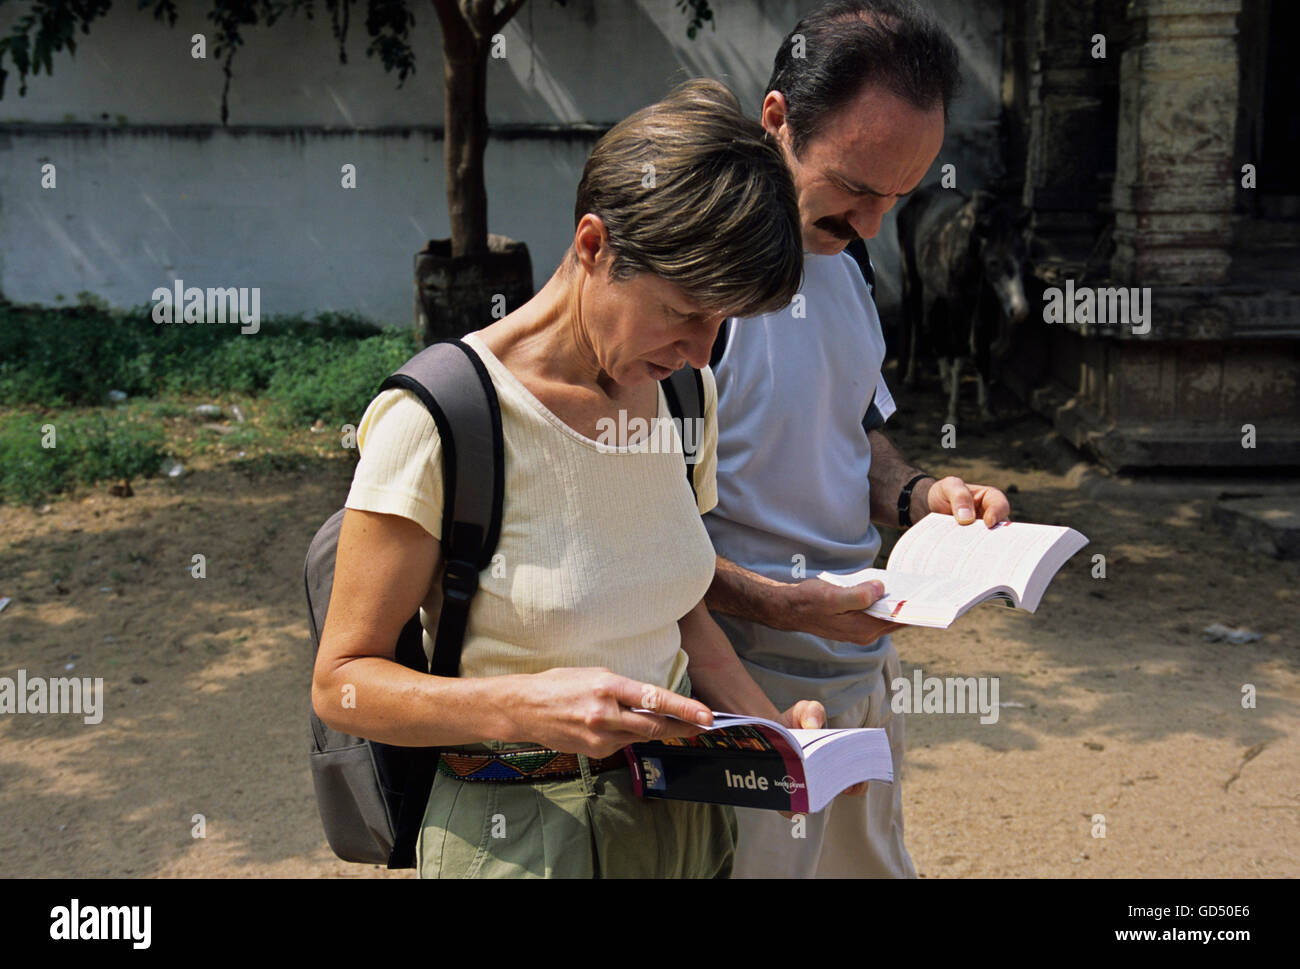 Foreigners Going Through Guide Book - Stock Image